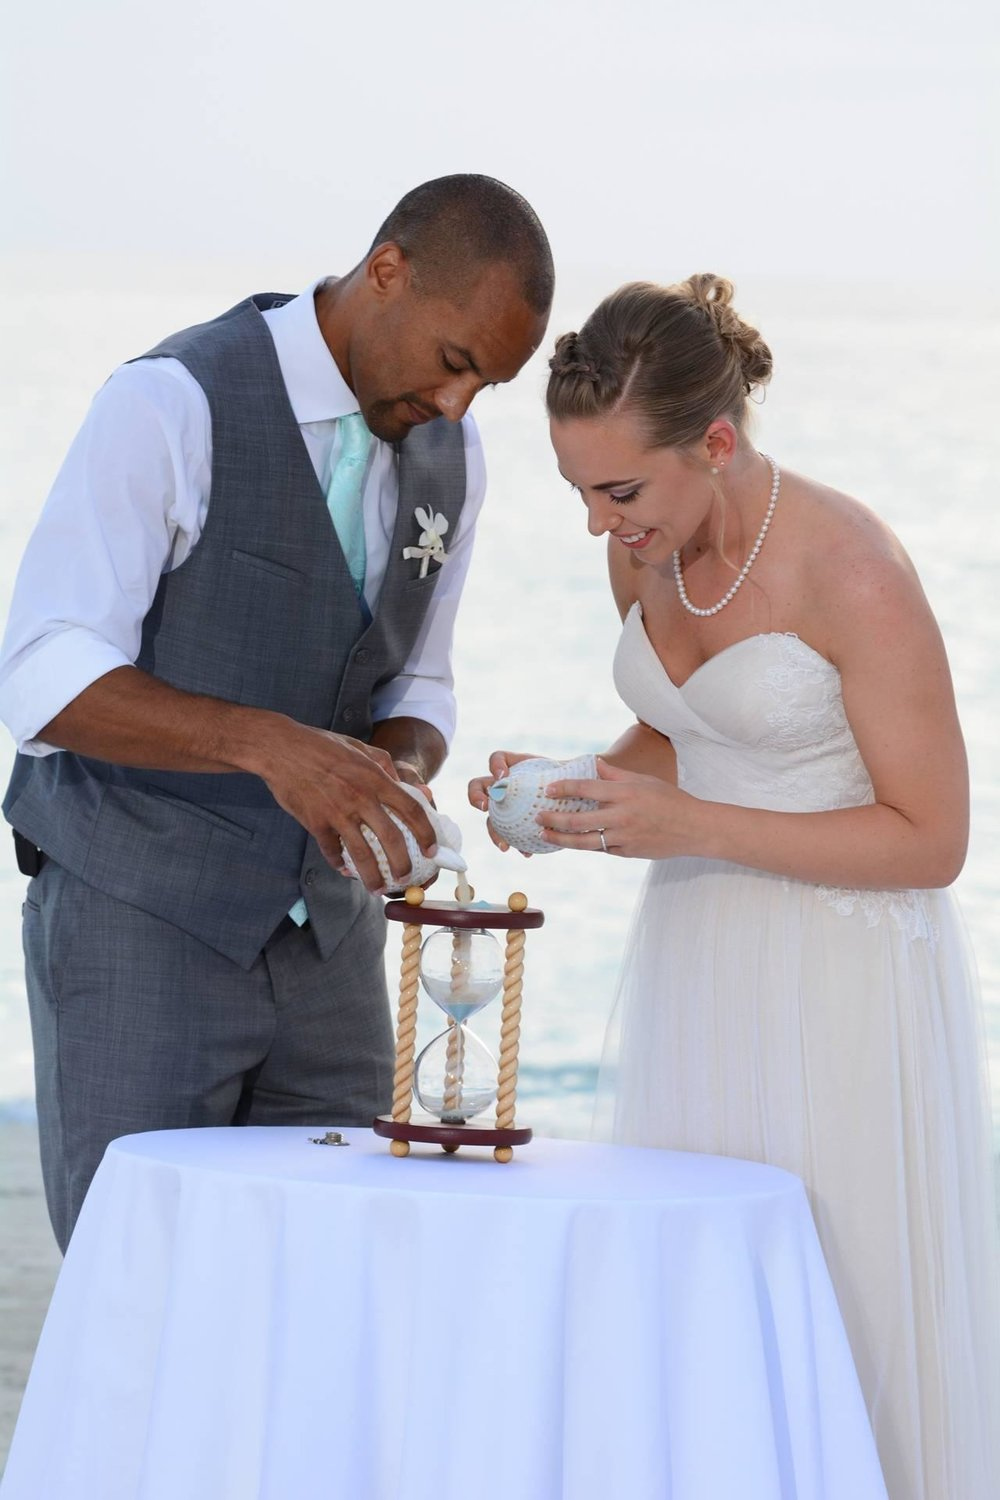 Capture The Moment, Preserve Your Wedding Memories, and Create an Heirloom with an Hourglass Wedding Unity Sand Ceremony - see more on www.BrendasWeddingBlog.com